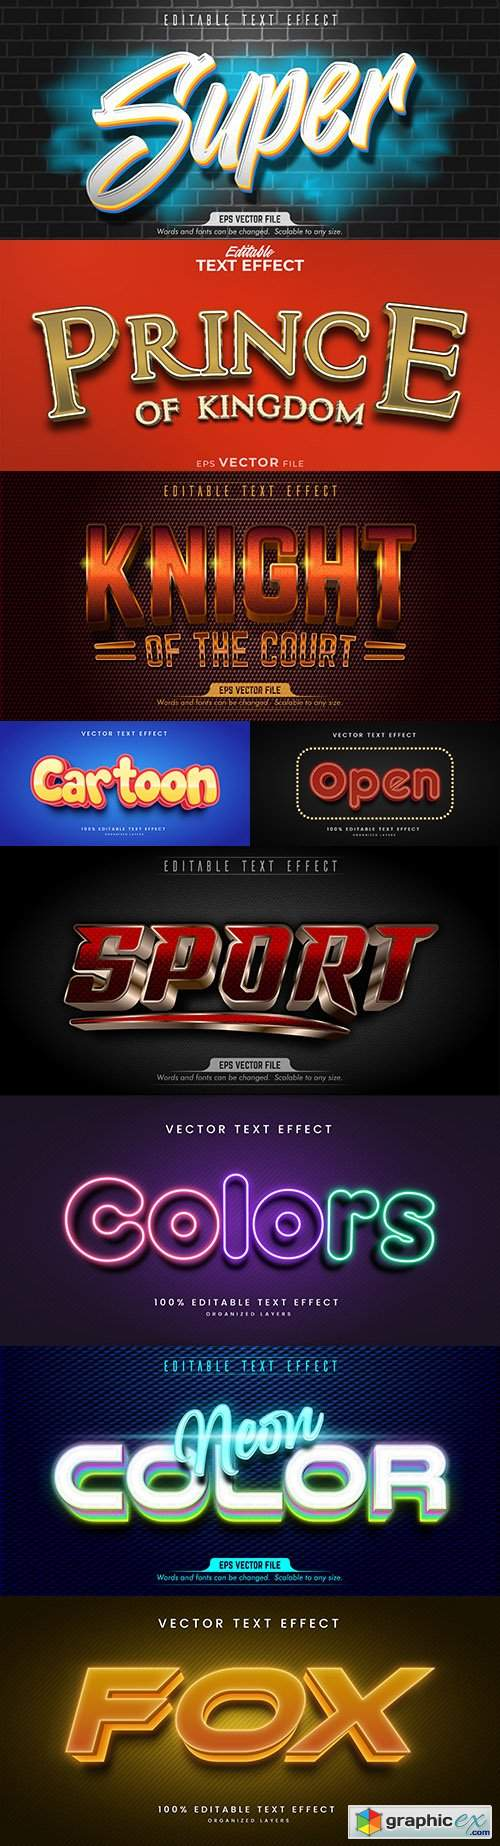 Editable font and 3d effect text design collection illustration 45